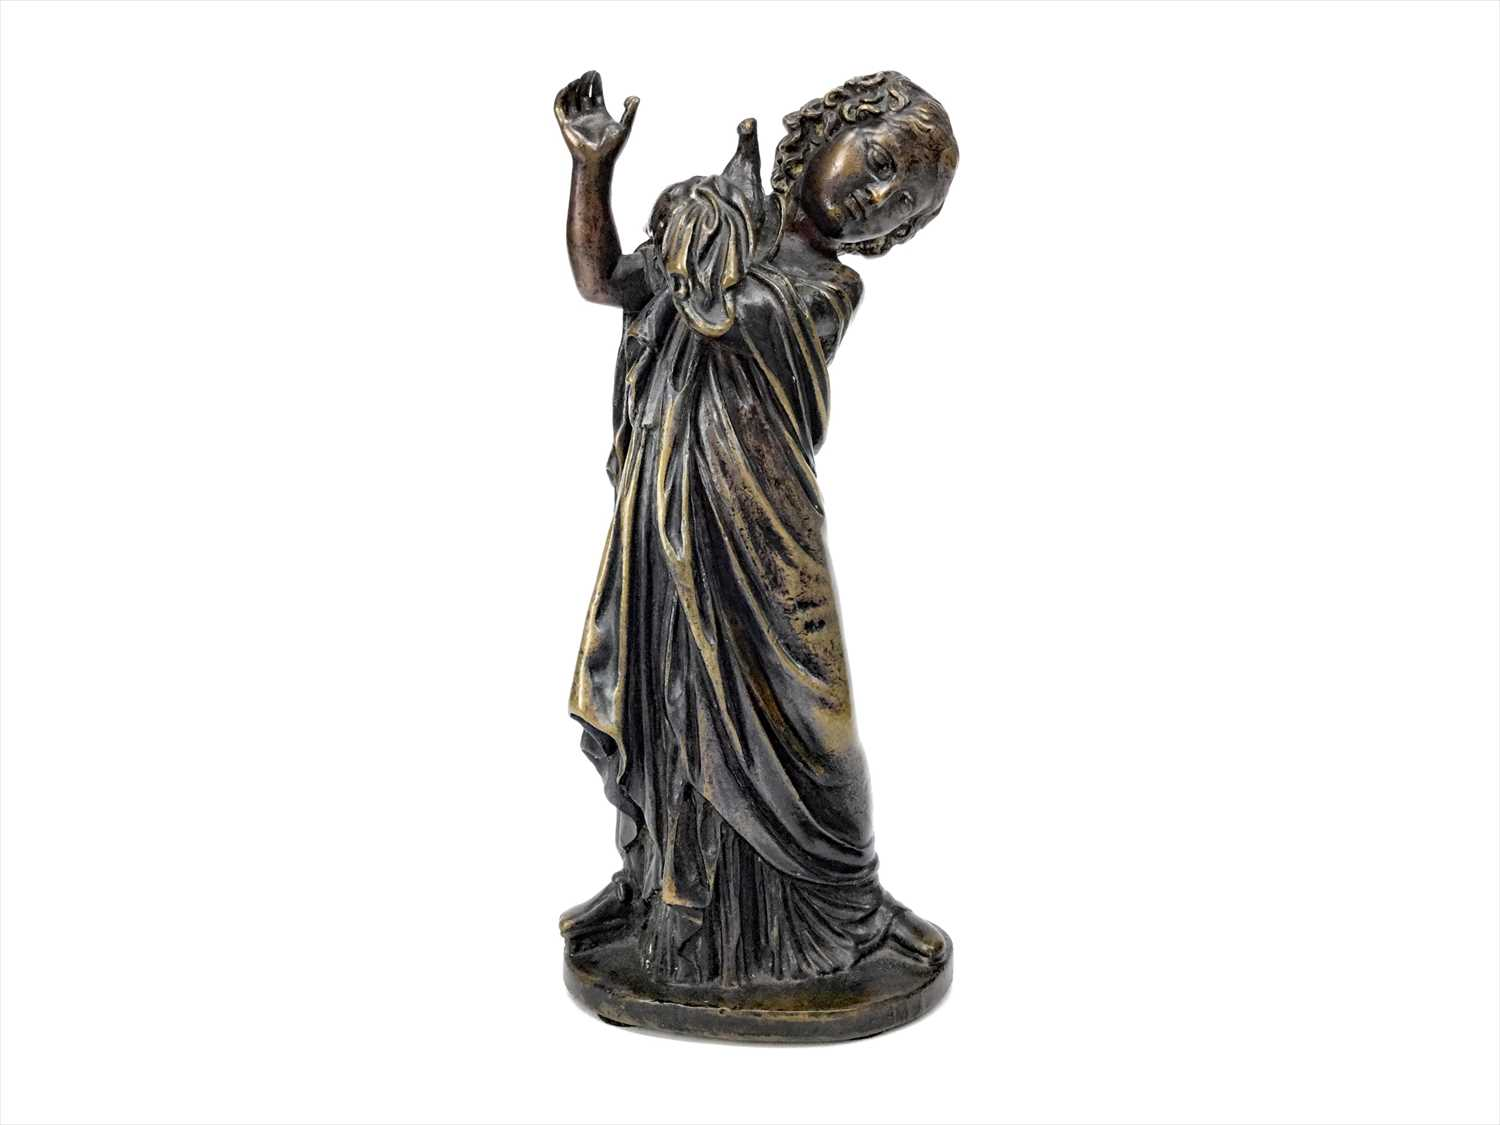 Lot 1606-A 19TH CENTURY BRONZE FIGURE OF A GIRL AND A BIRD